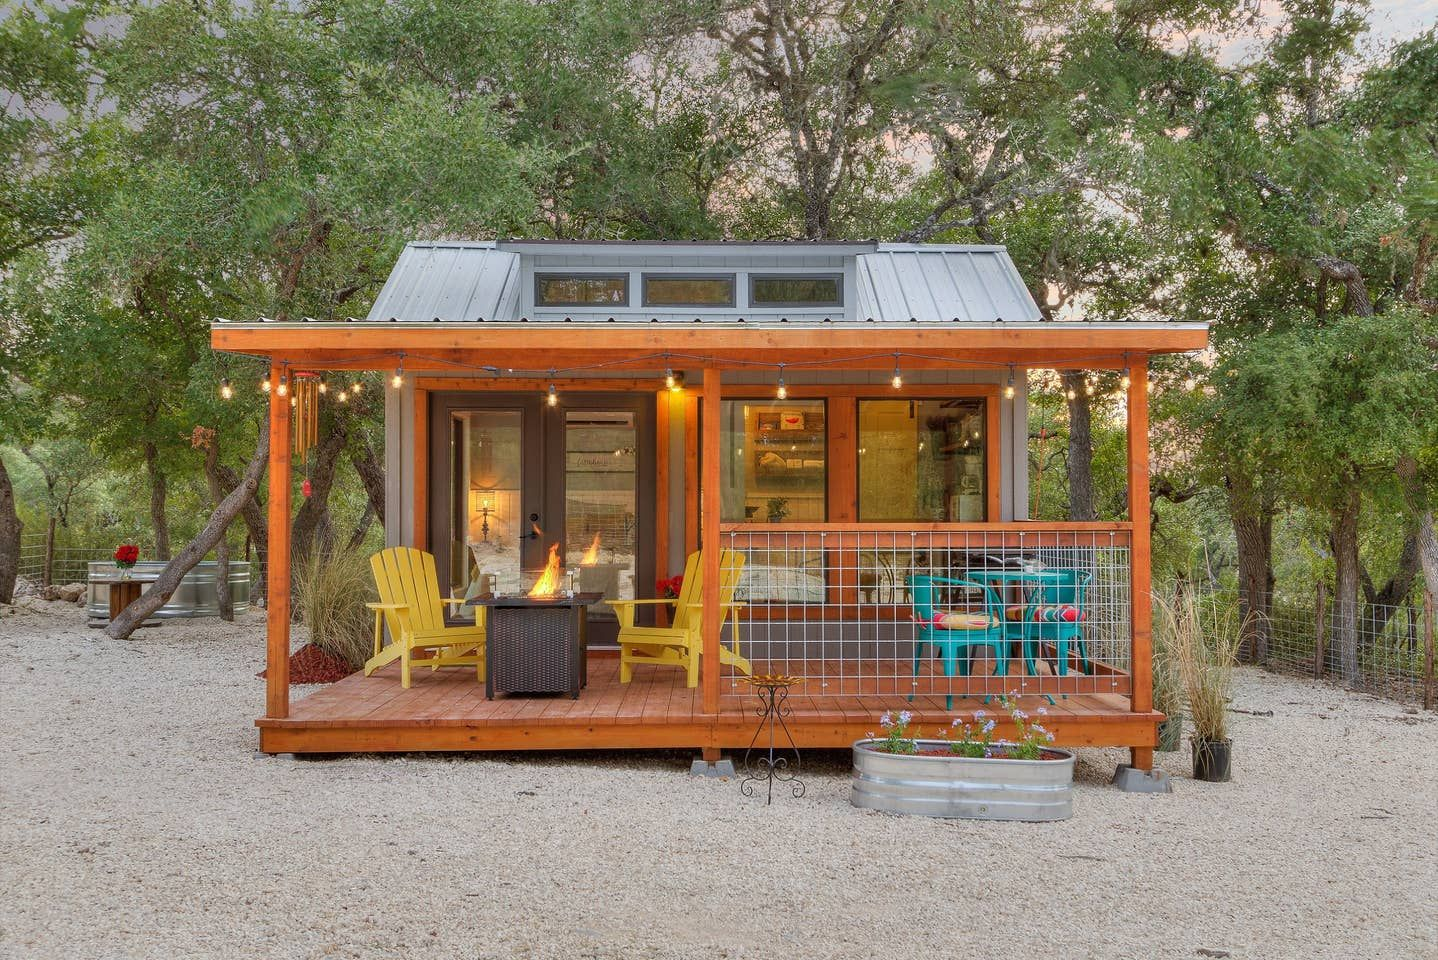 20 tiny houses in texas you can rent on airbnb in 2020 in